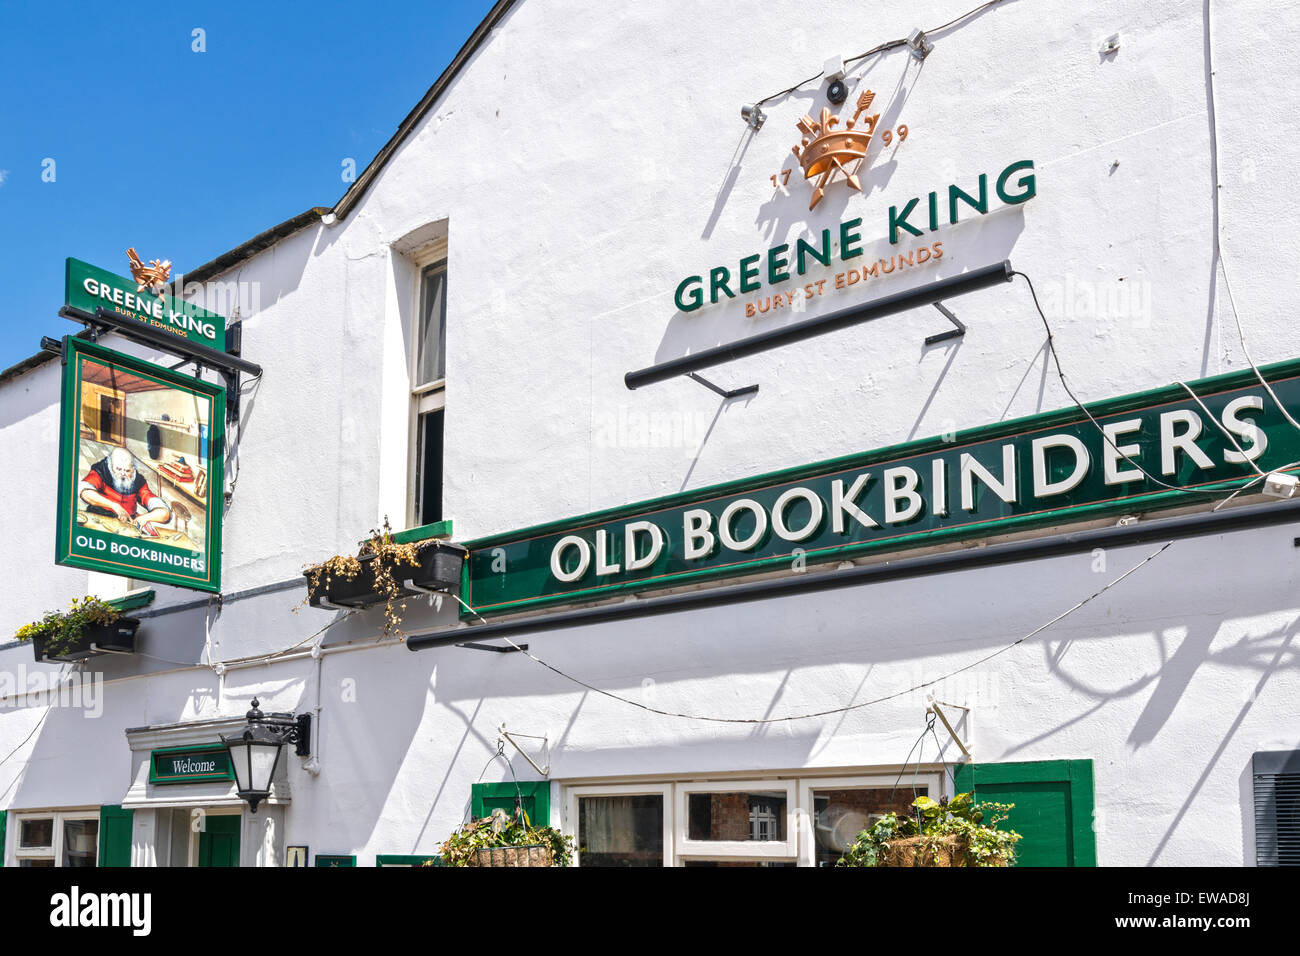 OXFORD CITY JERICHO THE OLD BOOKBINDERS INN AND SIGN - Stock Image